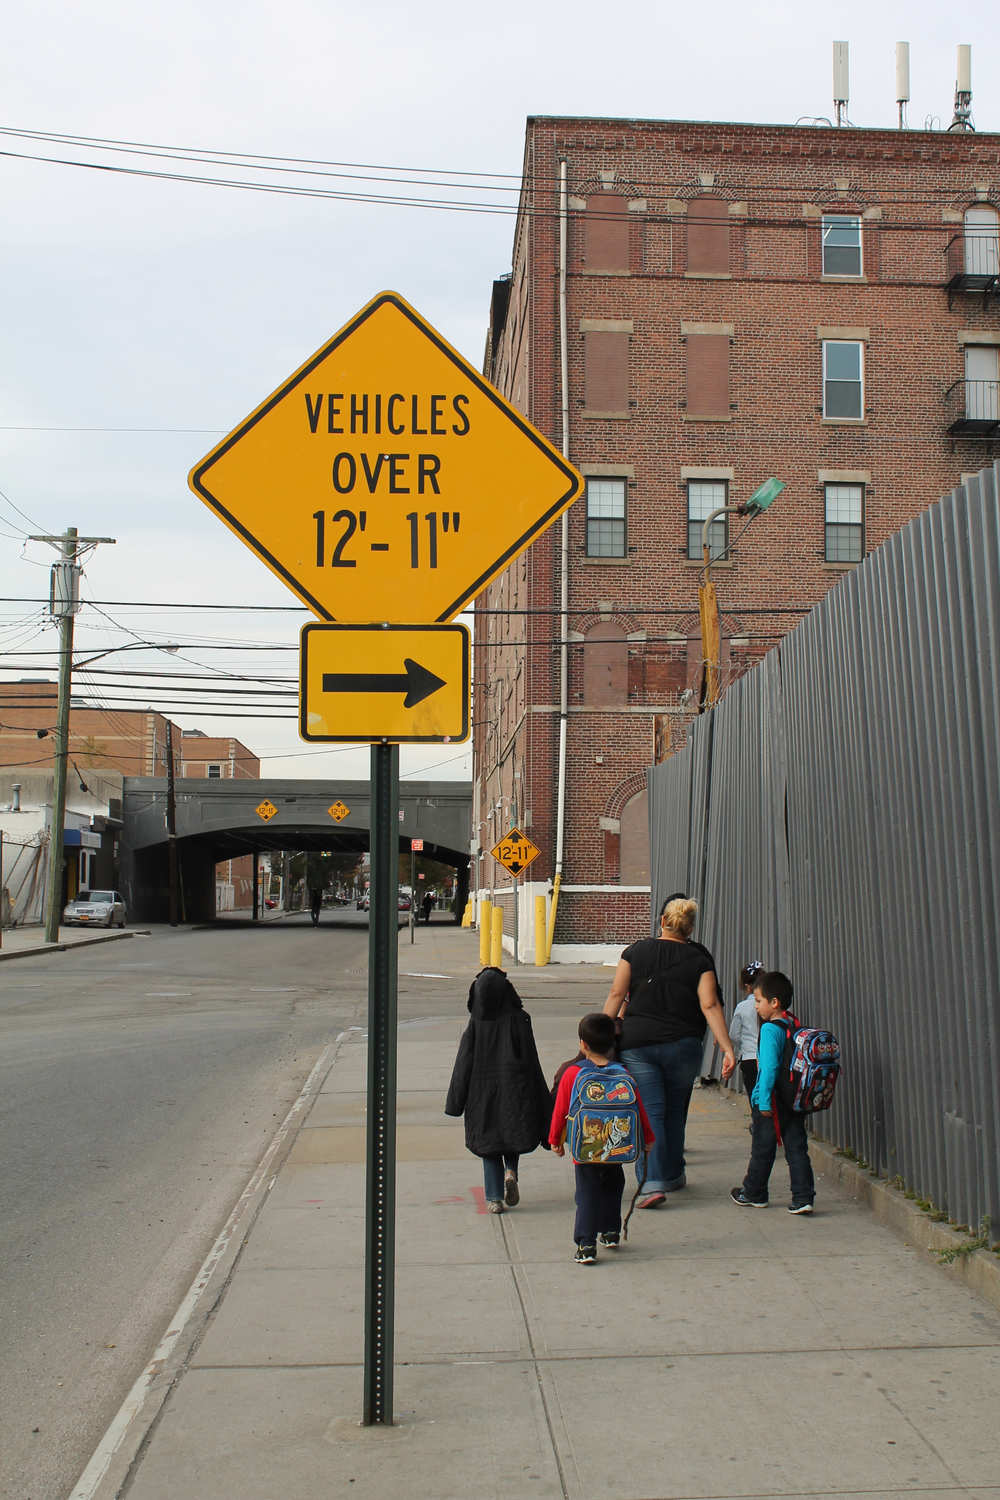 "The only visible traffic restriction along 170th Street is a ban on commercial trucks taller than 12'11"", which must turn east onto Douglas Avenue.  Trucks taller than that cannot clear the LIRR overpass in the background.  Some community residents believe that this traffic sign may implicitly approve the use of 170th Street by shorter, but still large and heavy, commercial trucks.   Source :  Louis Flores"